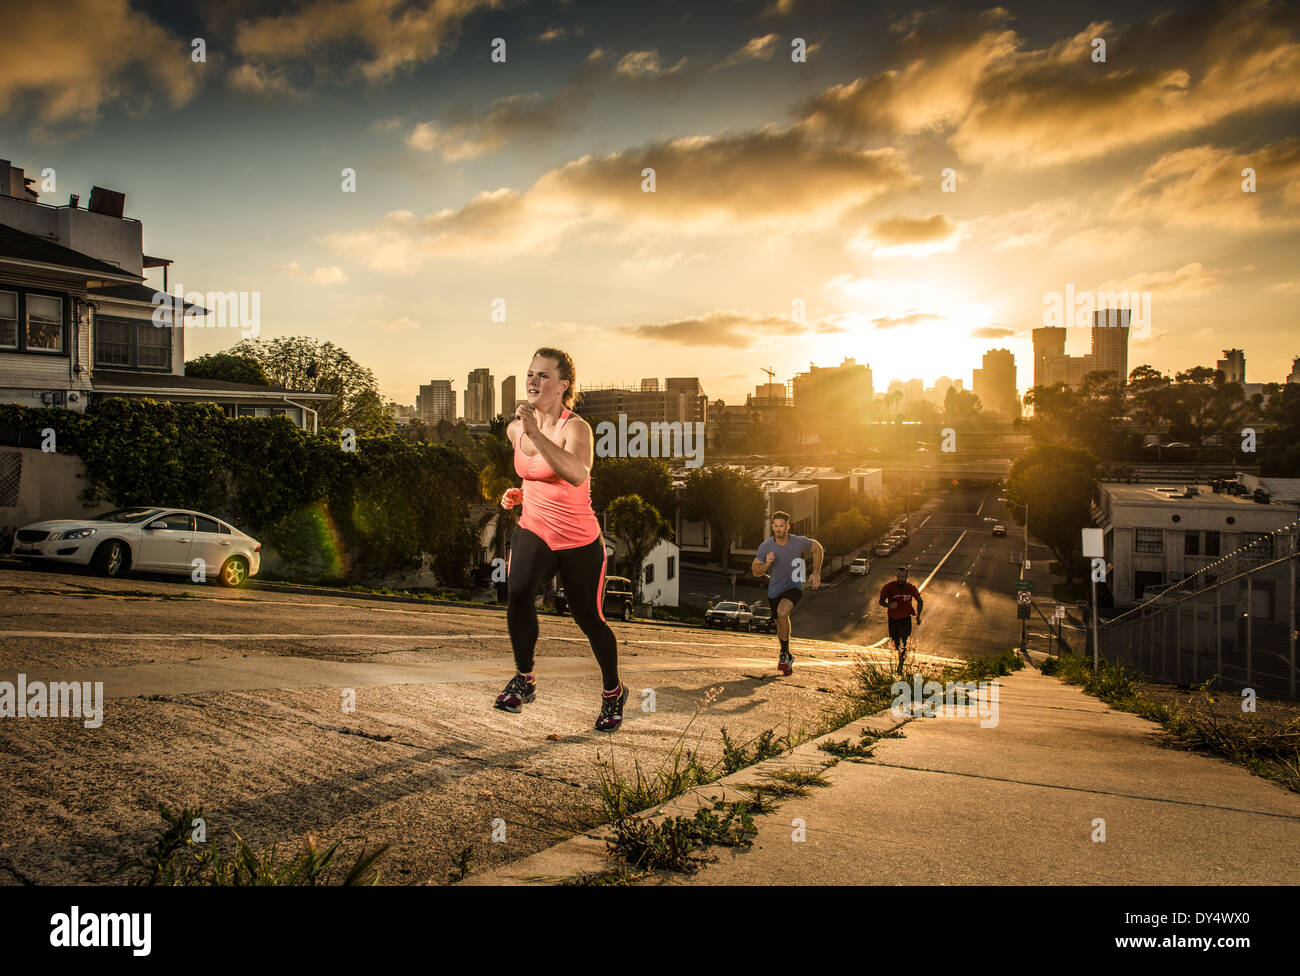 Team of runners running up a steep city hill - Stock Image